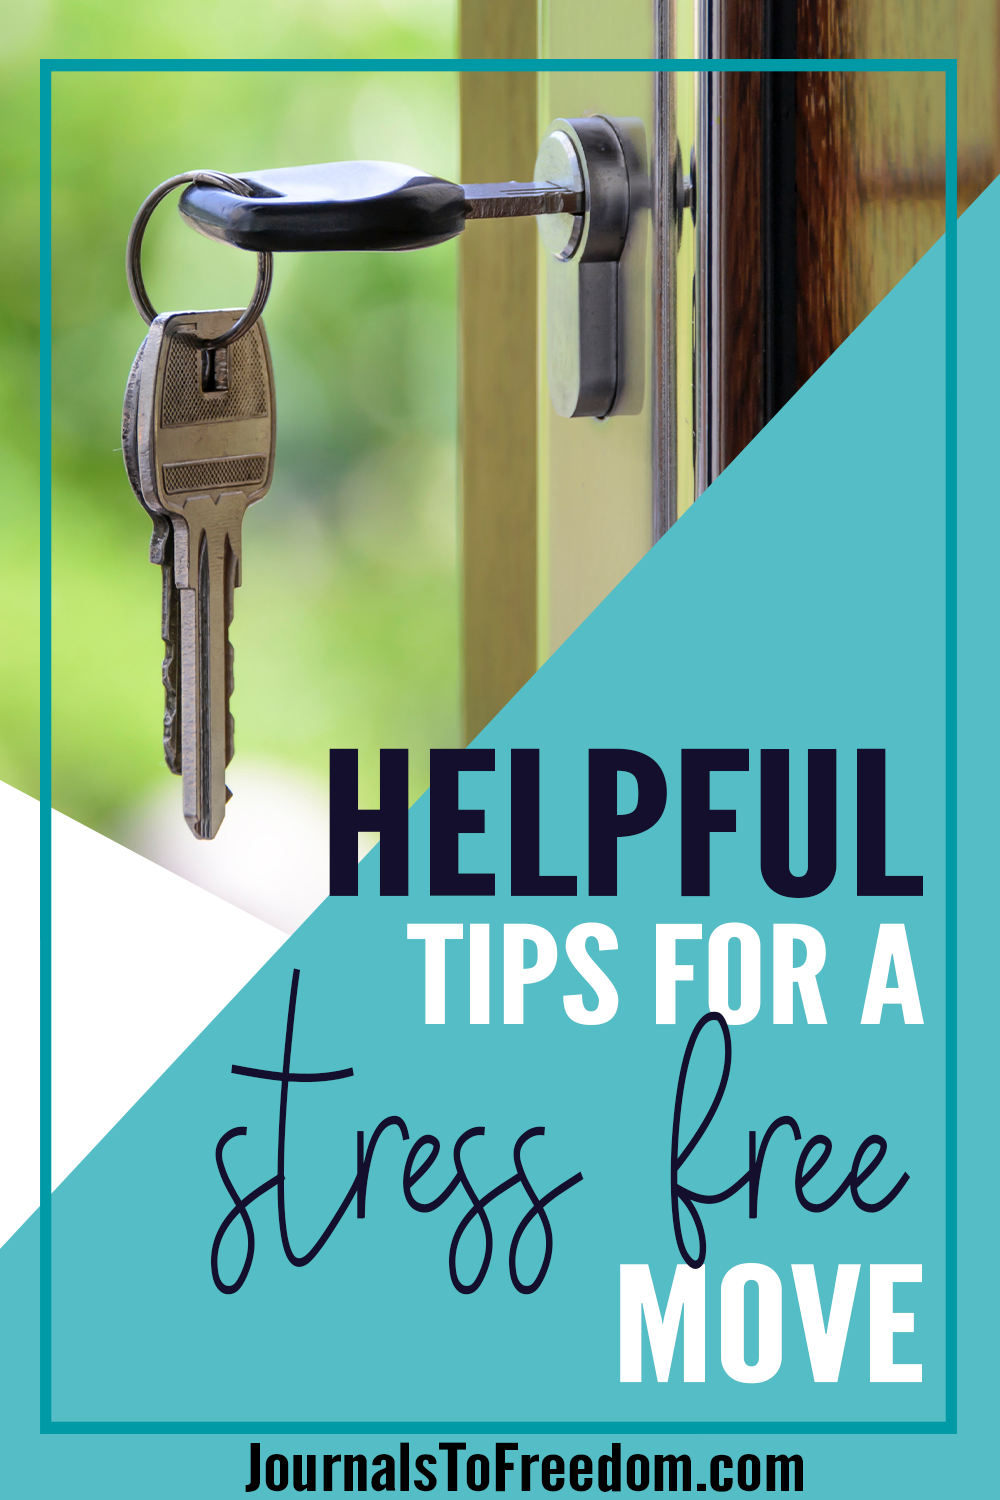 helpful tips for a stress free move